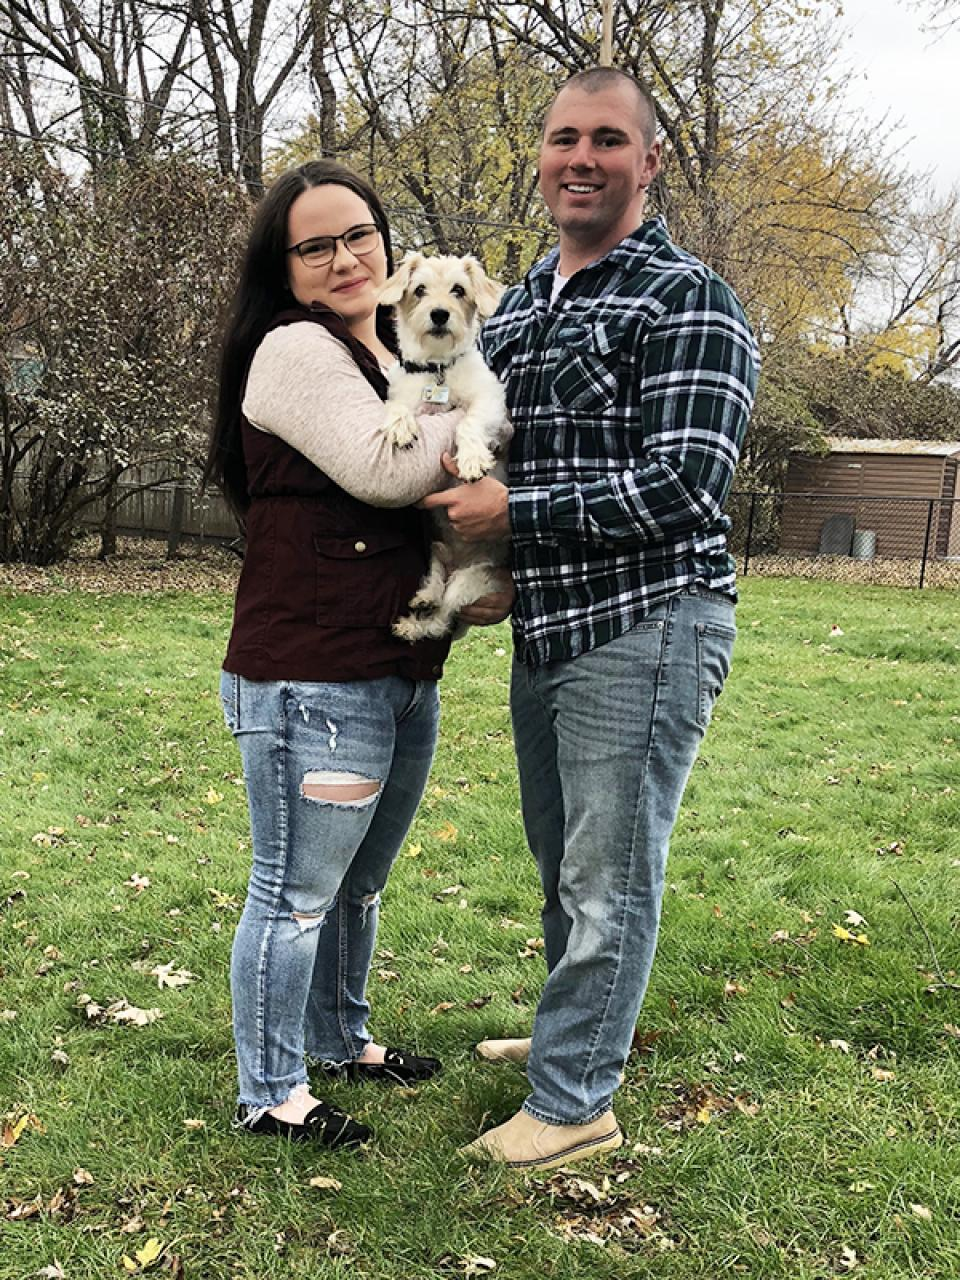 10 Of Our Favorite Dog Adoption Stories Of 2019 So Far Animal Humane Society